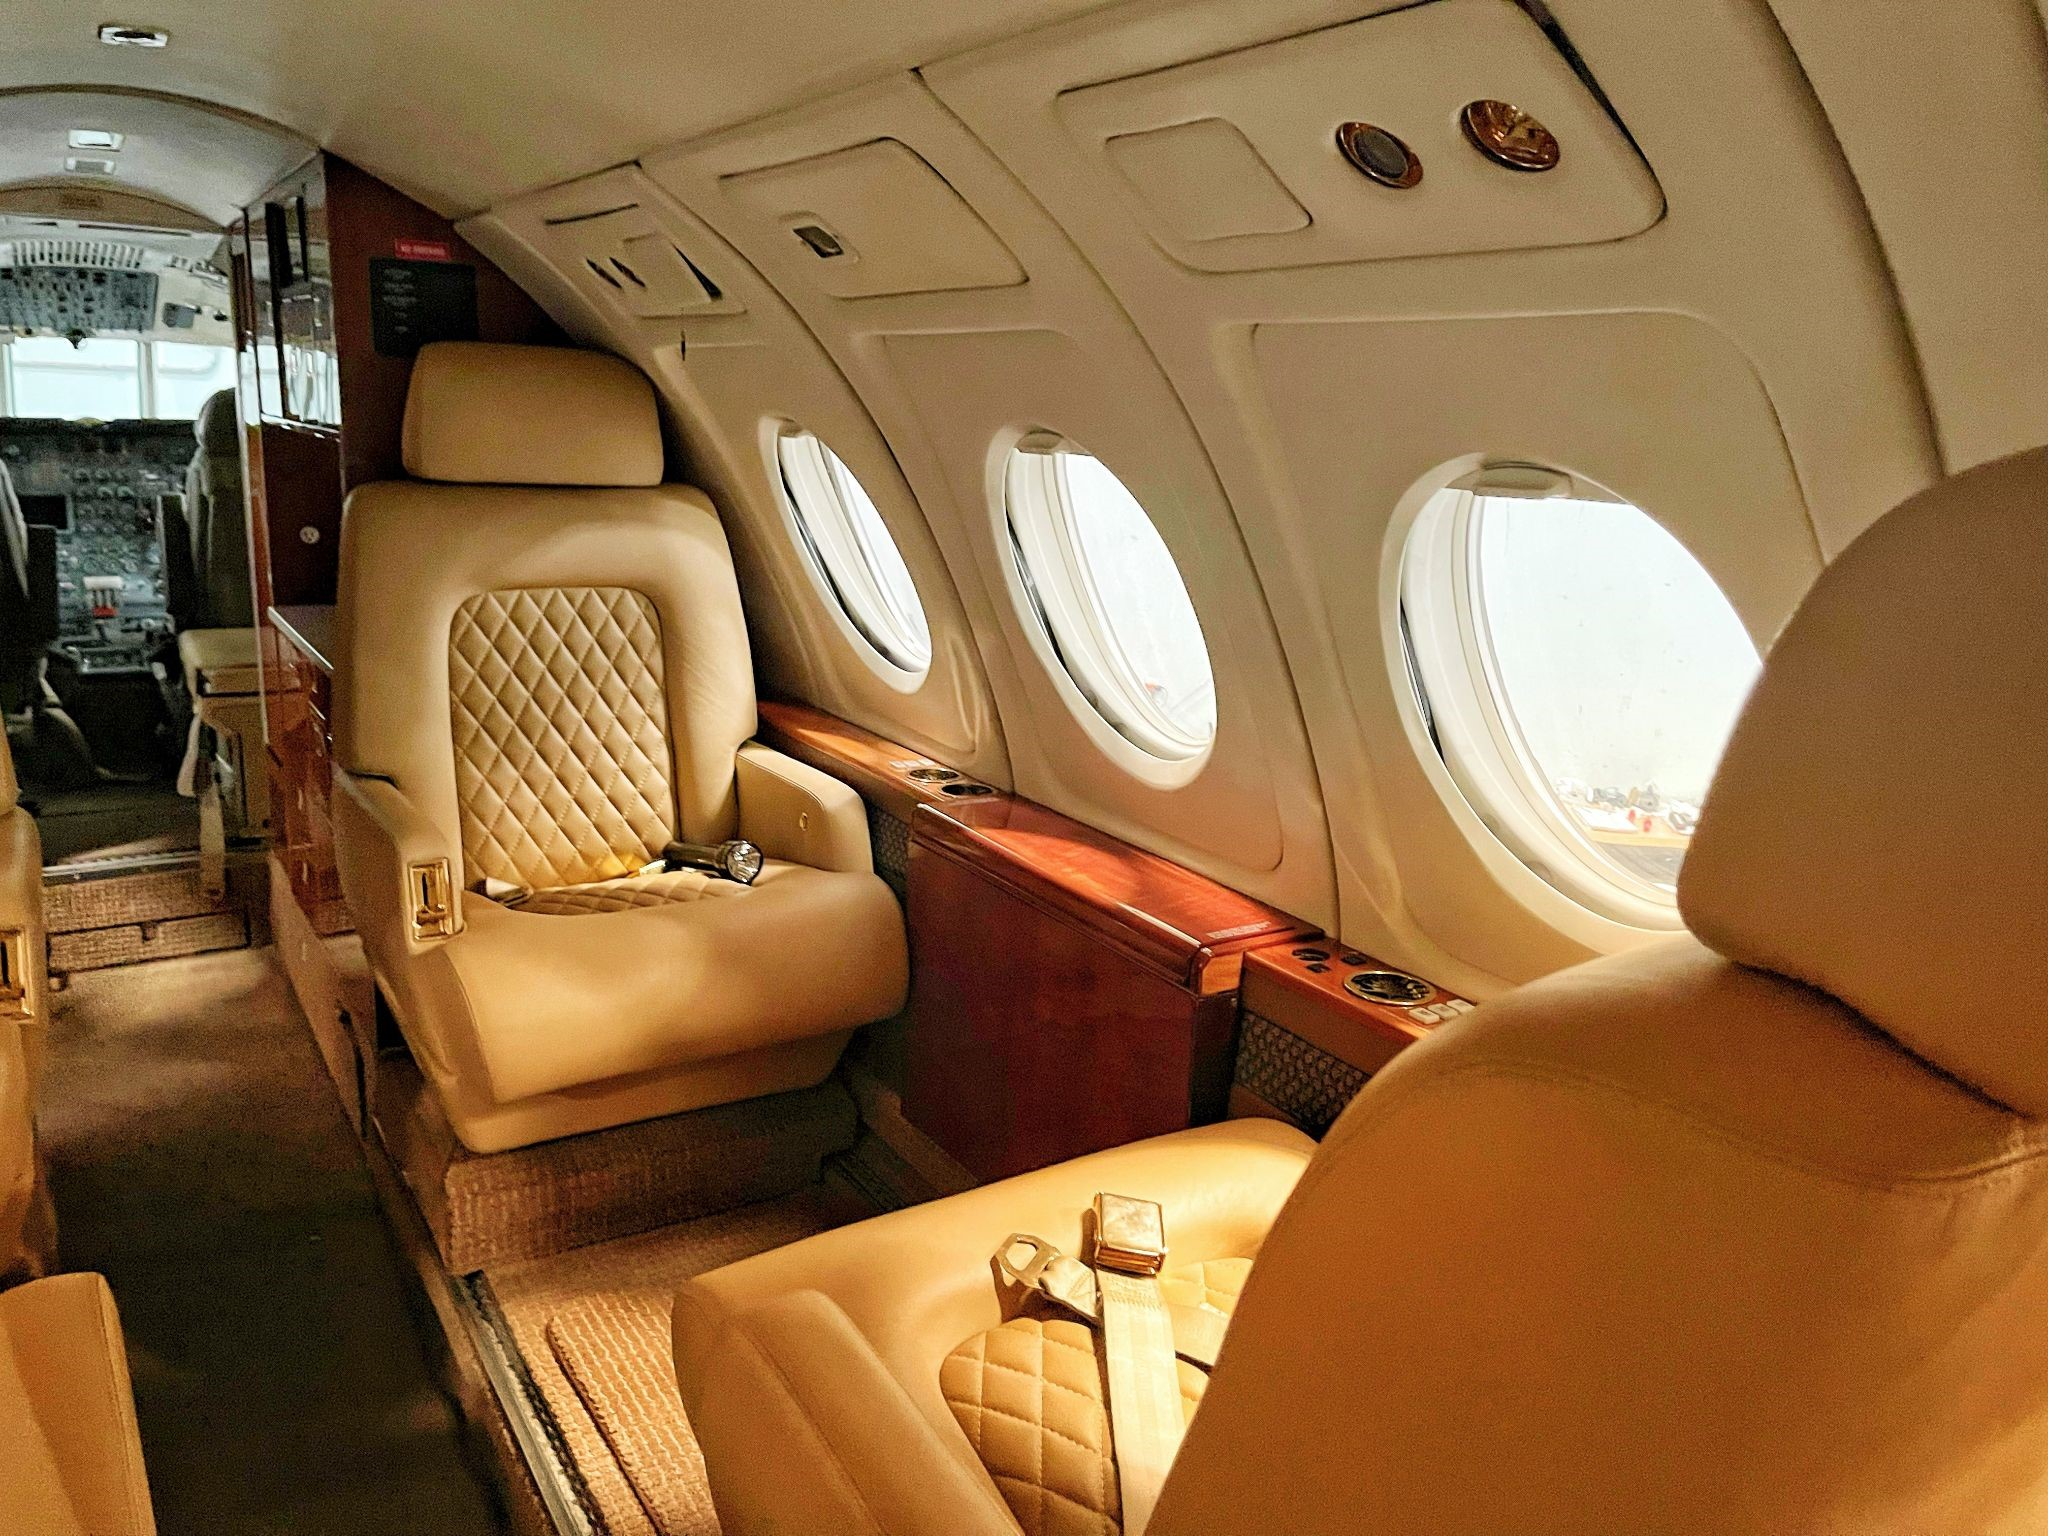 inner part of a private jet